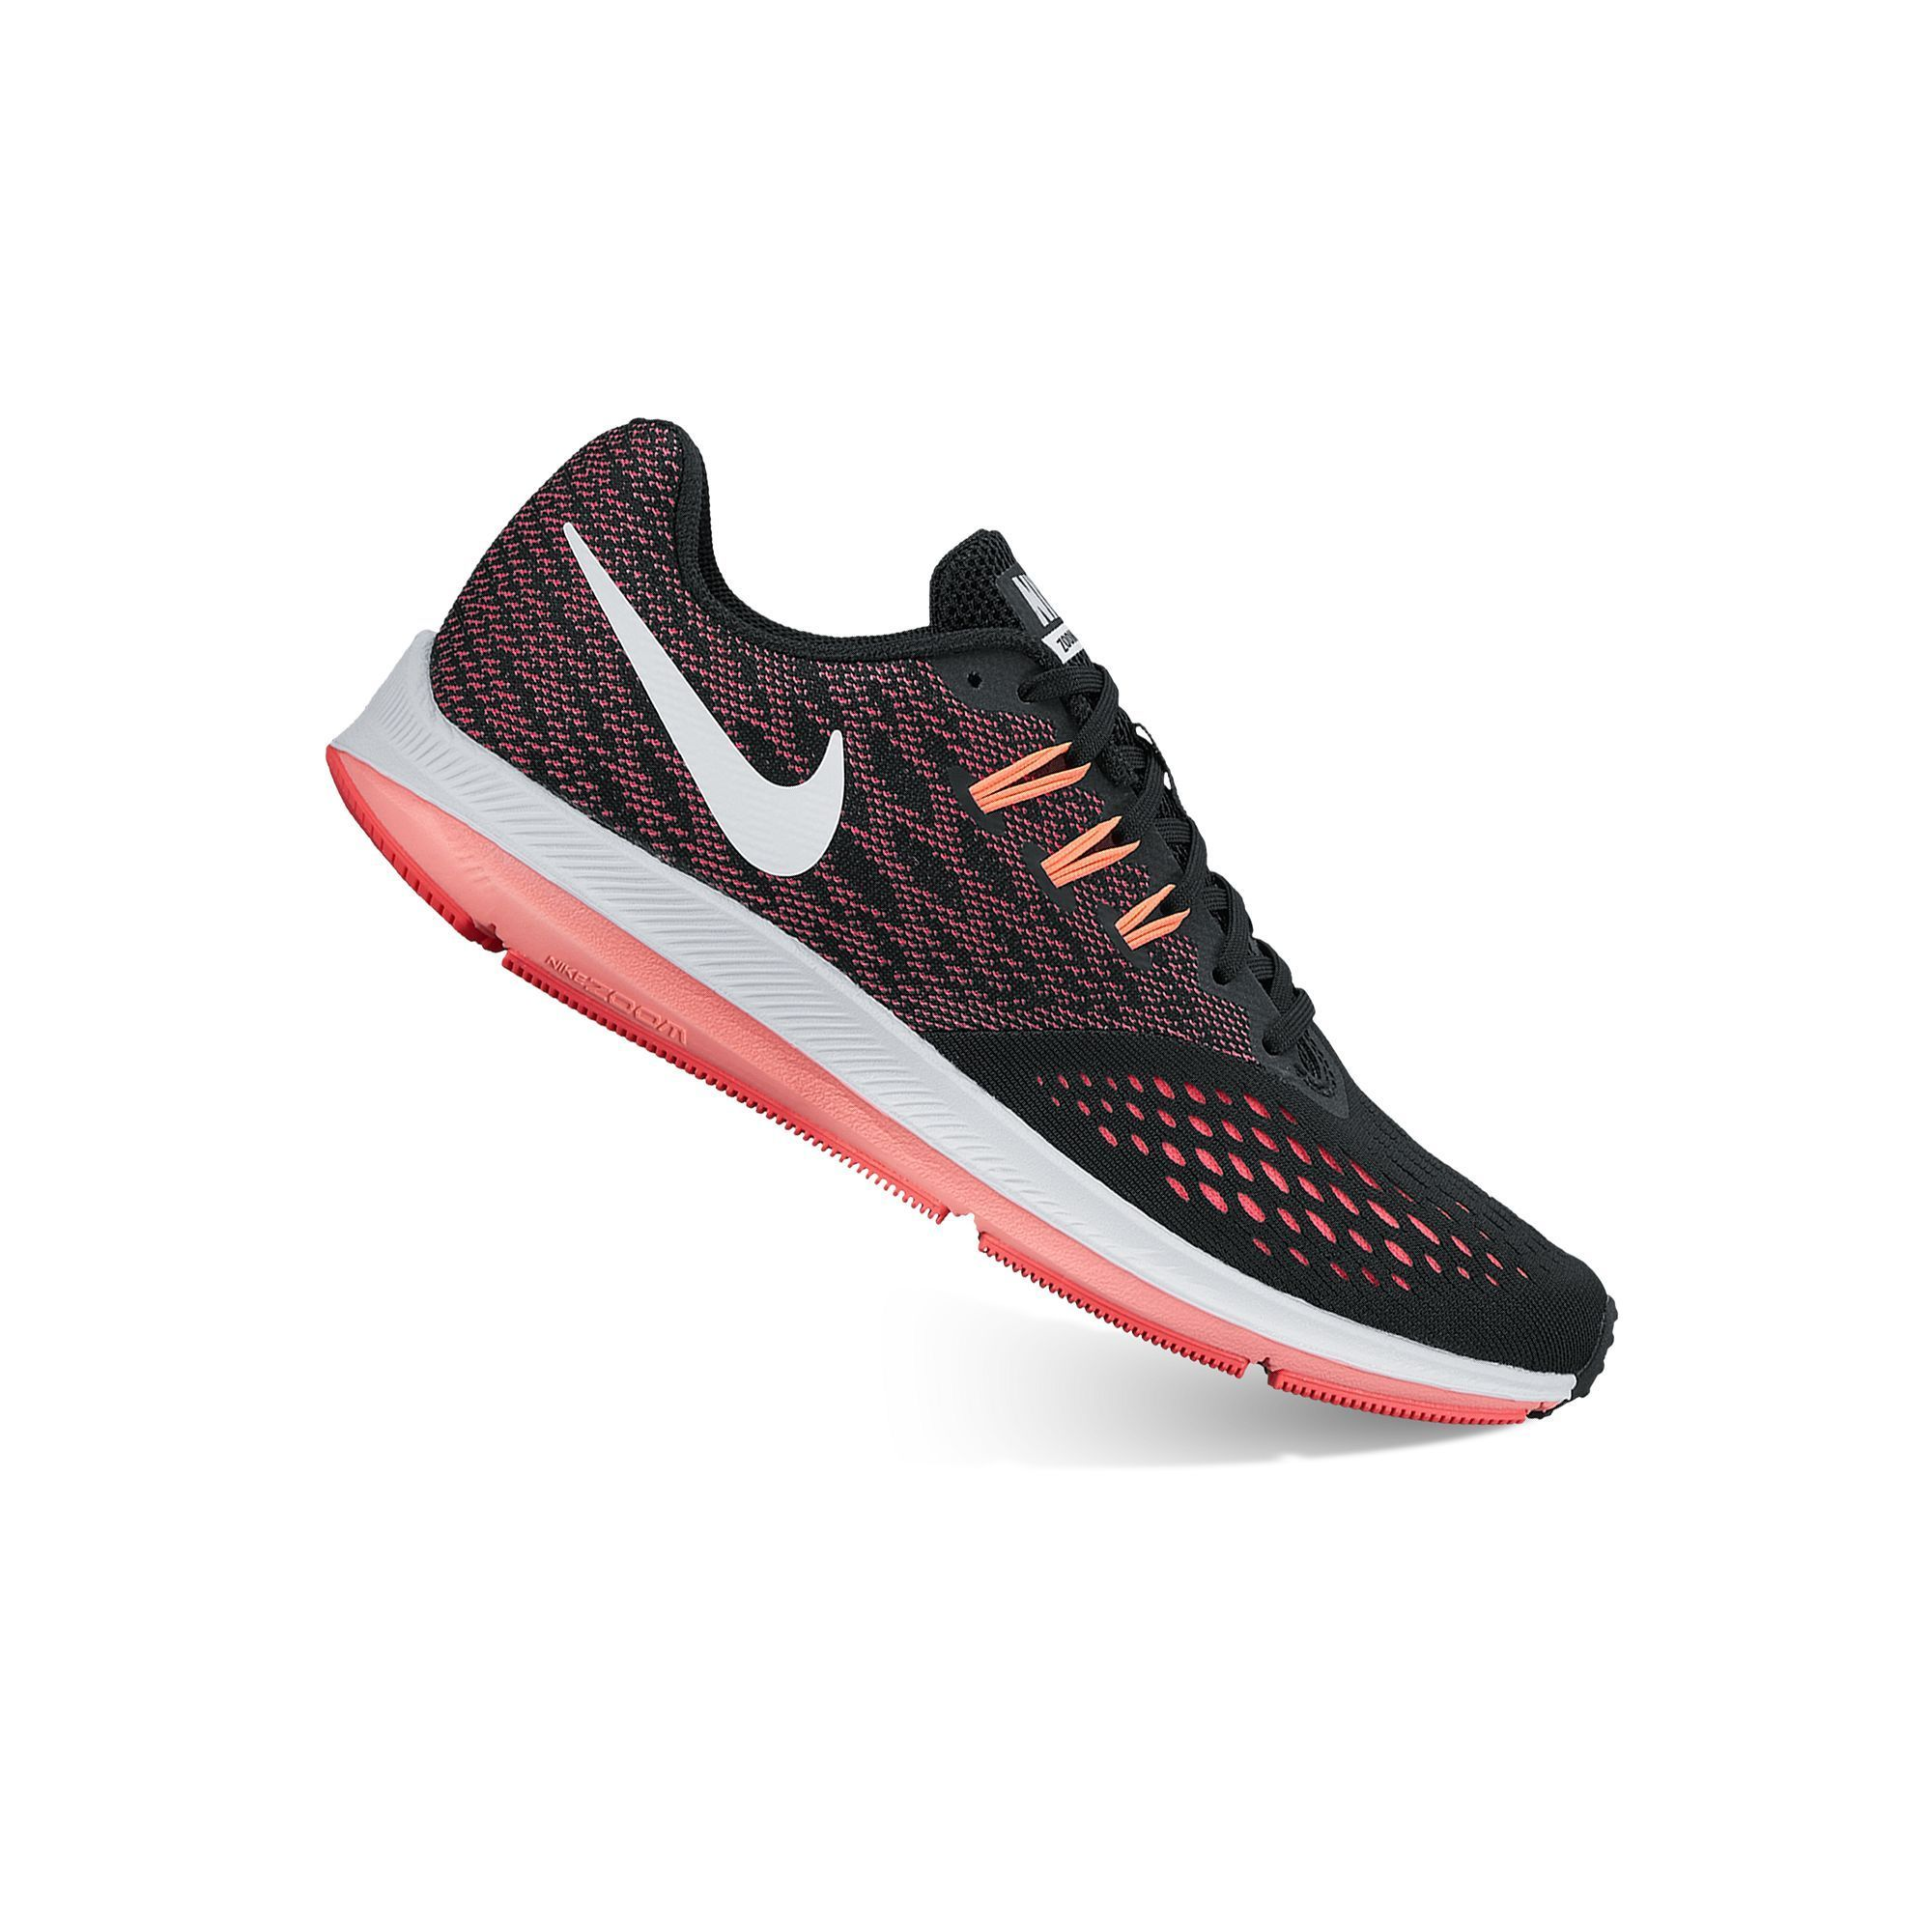 premium selection 20477 cfbdf Nike Air Zoom Winflo 4 Women's Running Shoes | Products ...